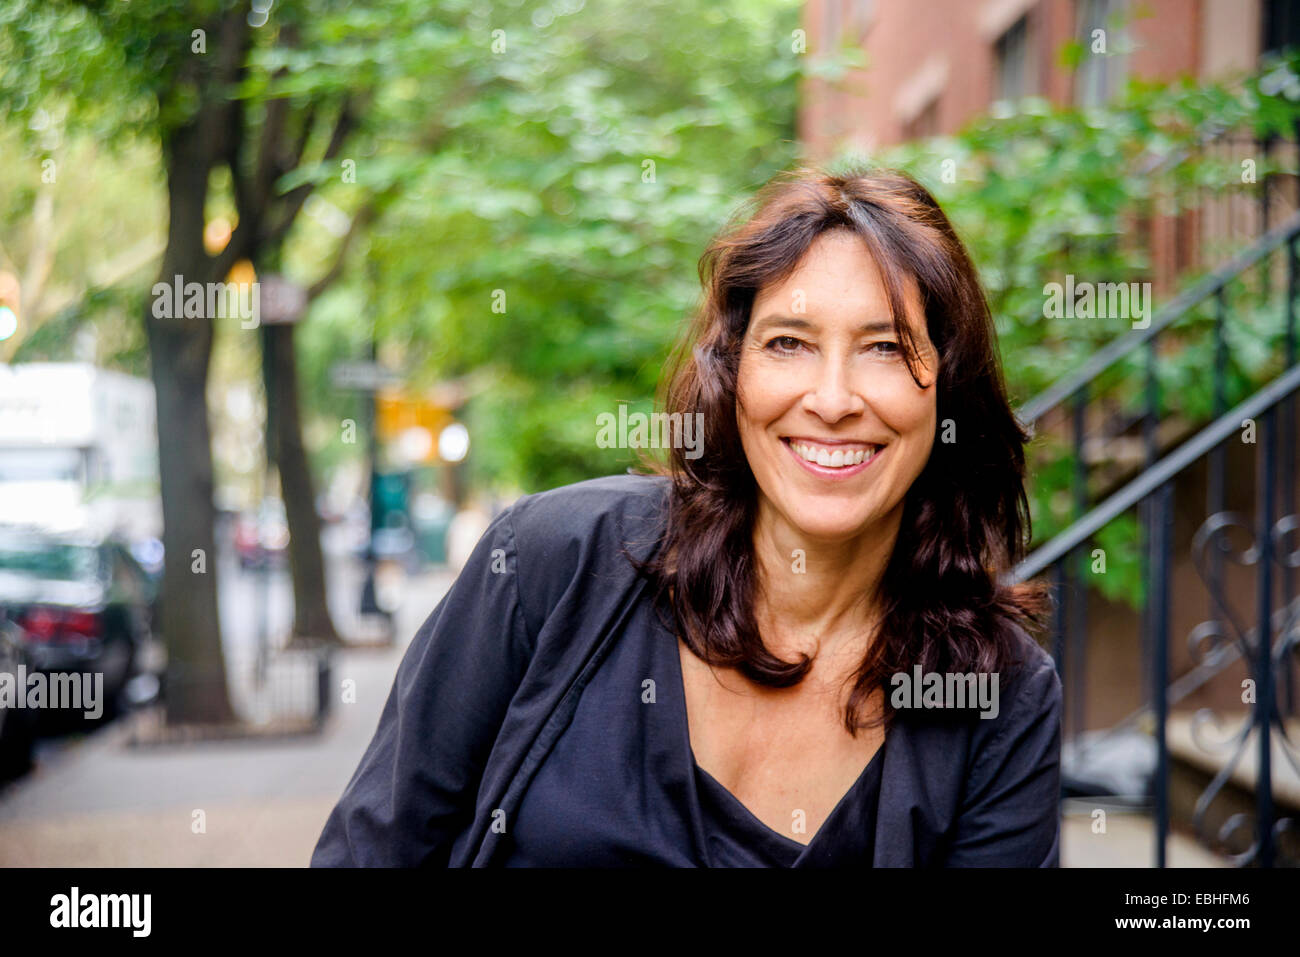 Portrait of smiling mature woman on city street - Stock Image